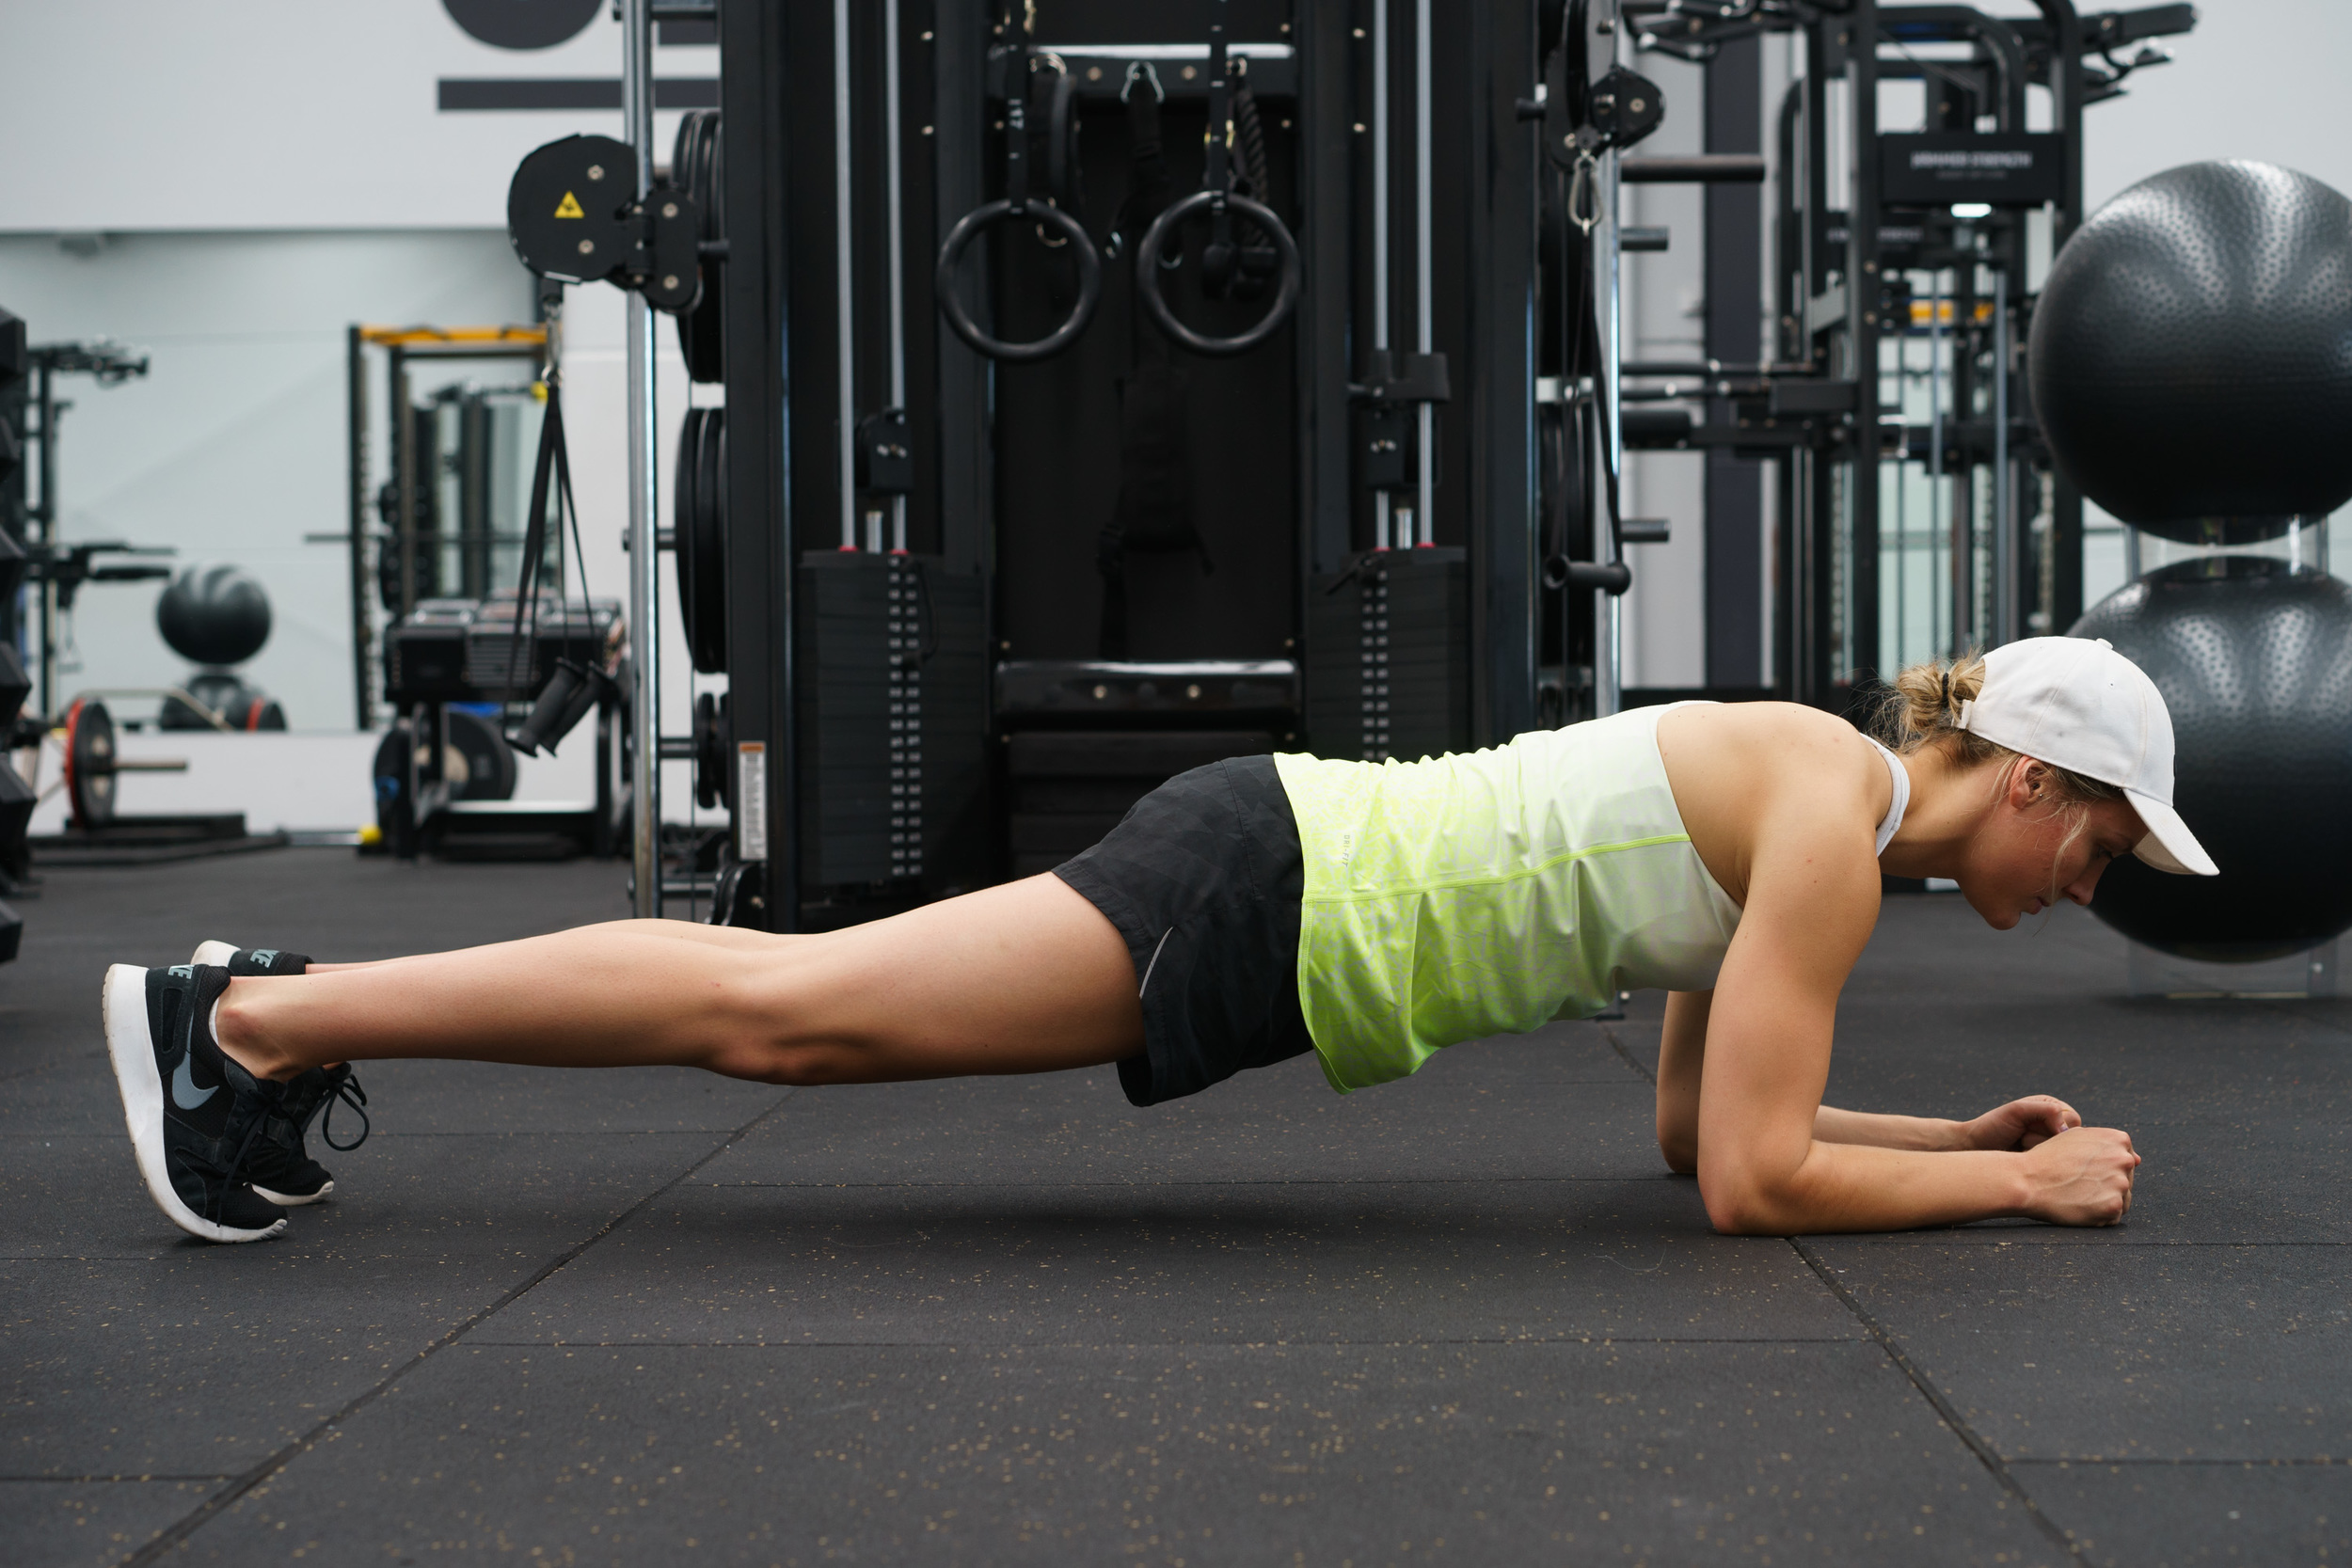 Training the core for performance